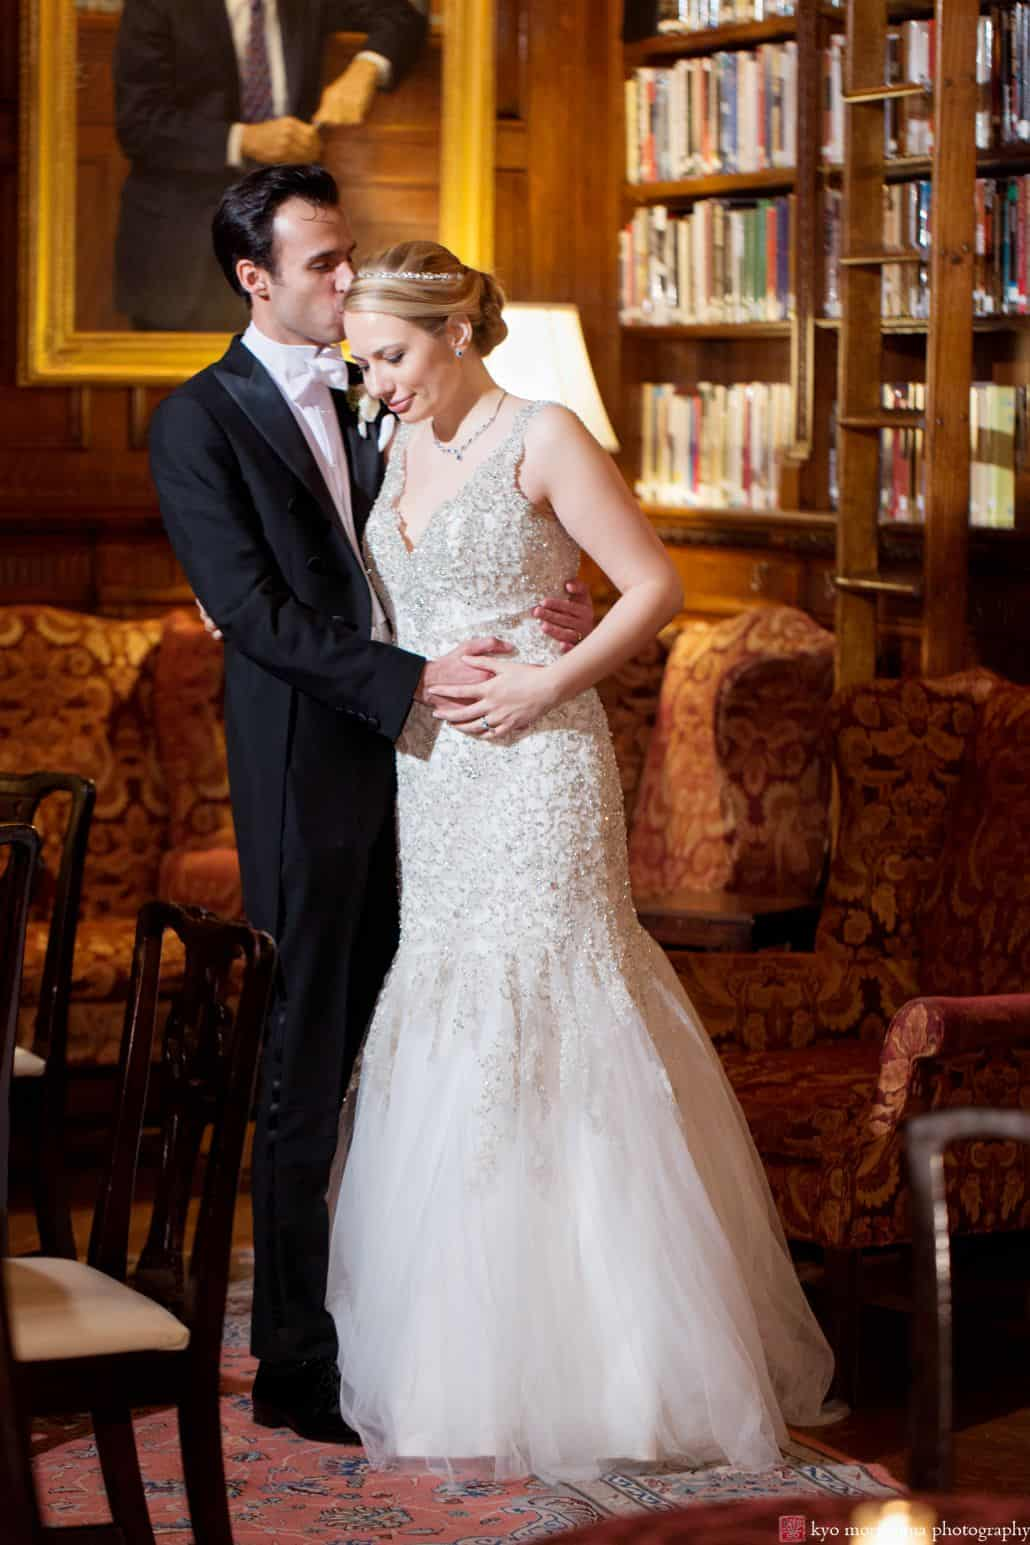 Groom kisses his bride's head in the Library of the Lotos Club in NYC. Bride wears Allure Couture wedding gown. Wedding Photography by Kyo Morishima.